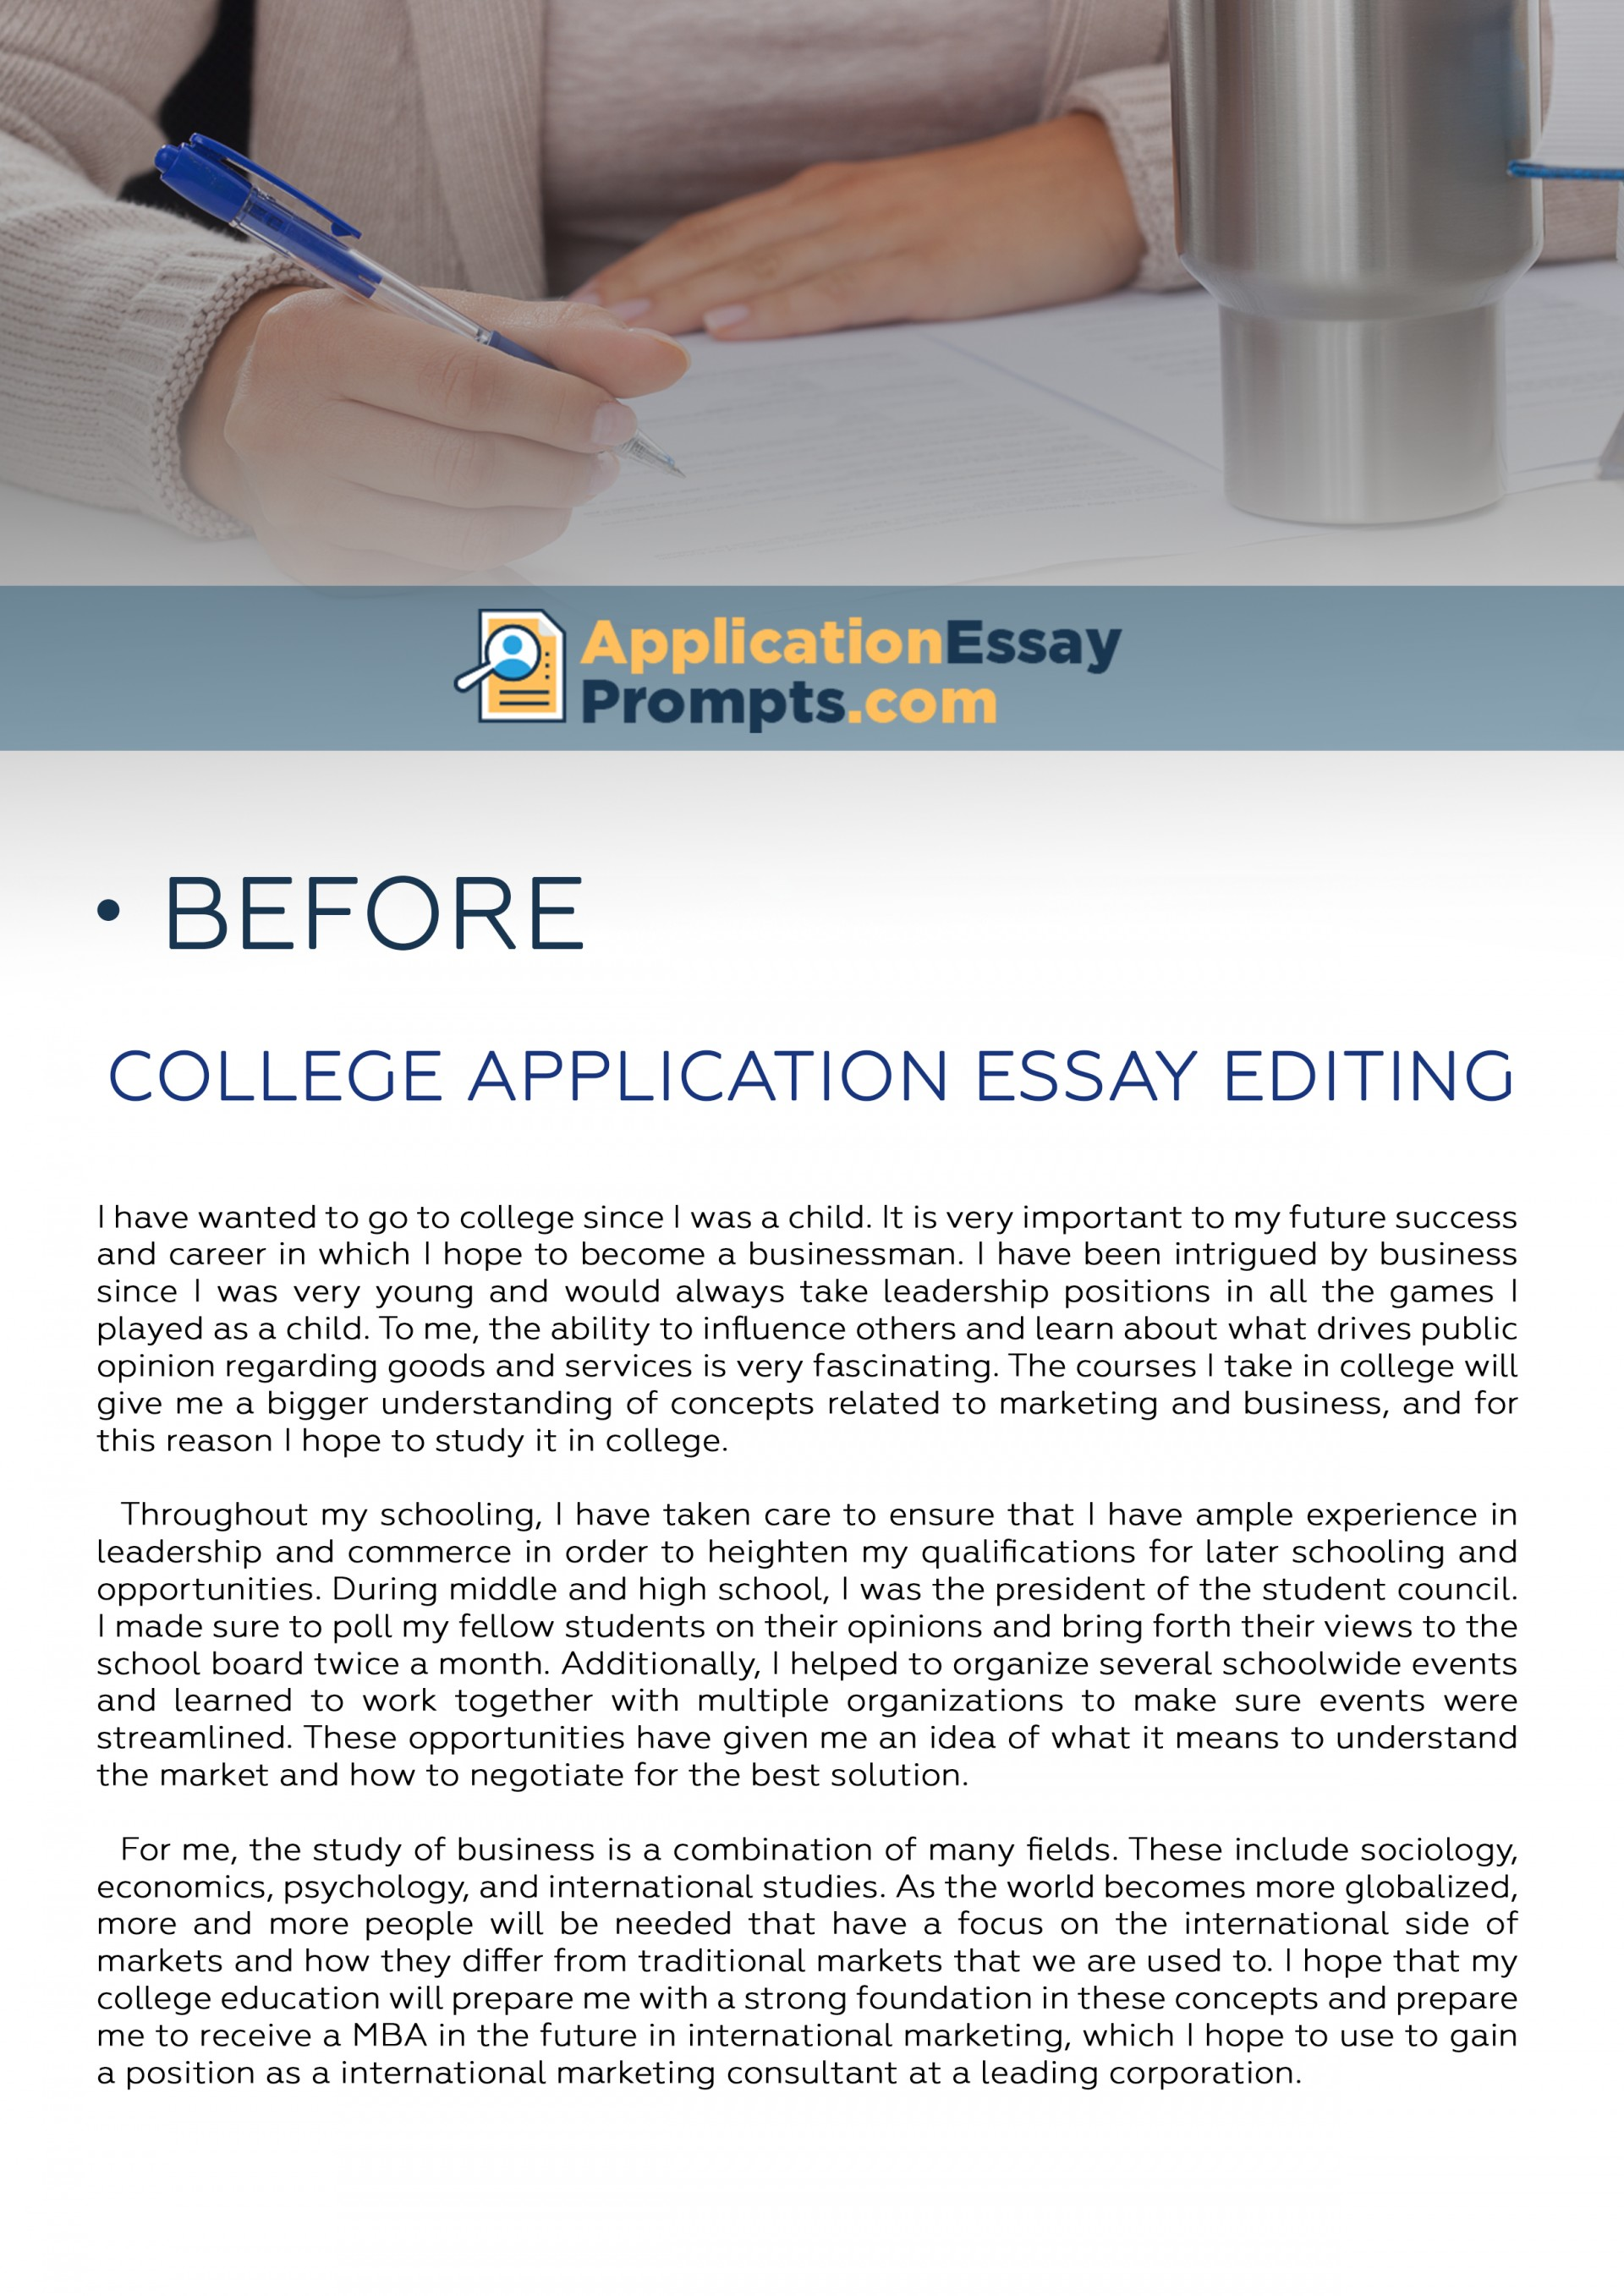 019 College Essay Editing Before Amazing Services Service Reviews Free 1920